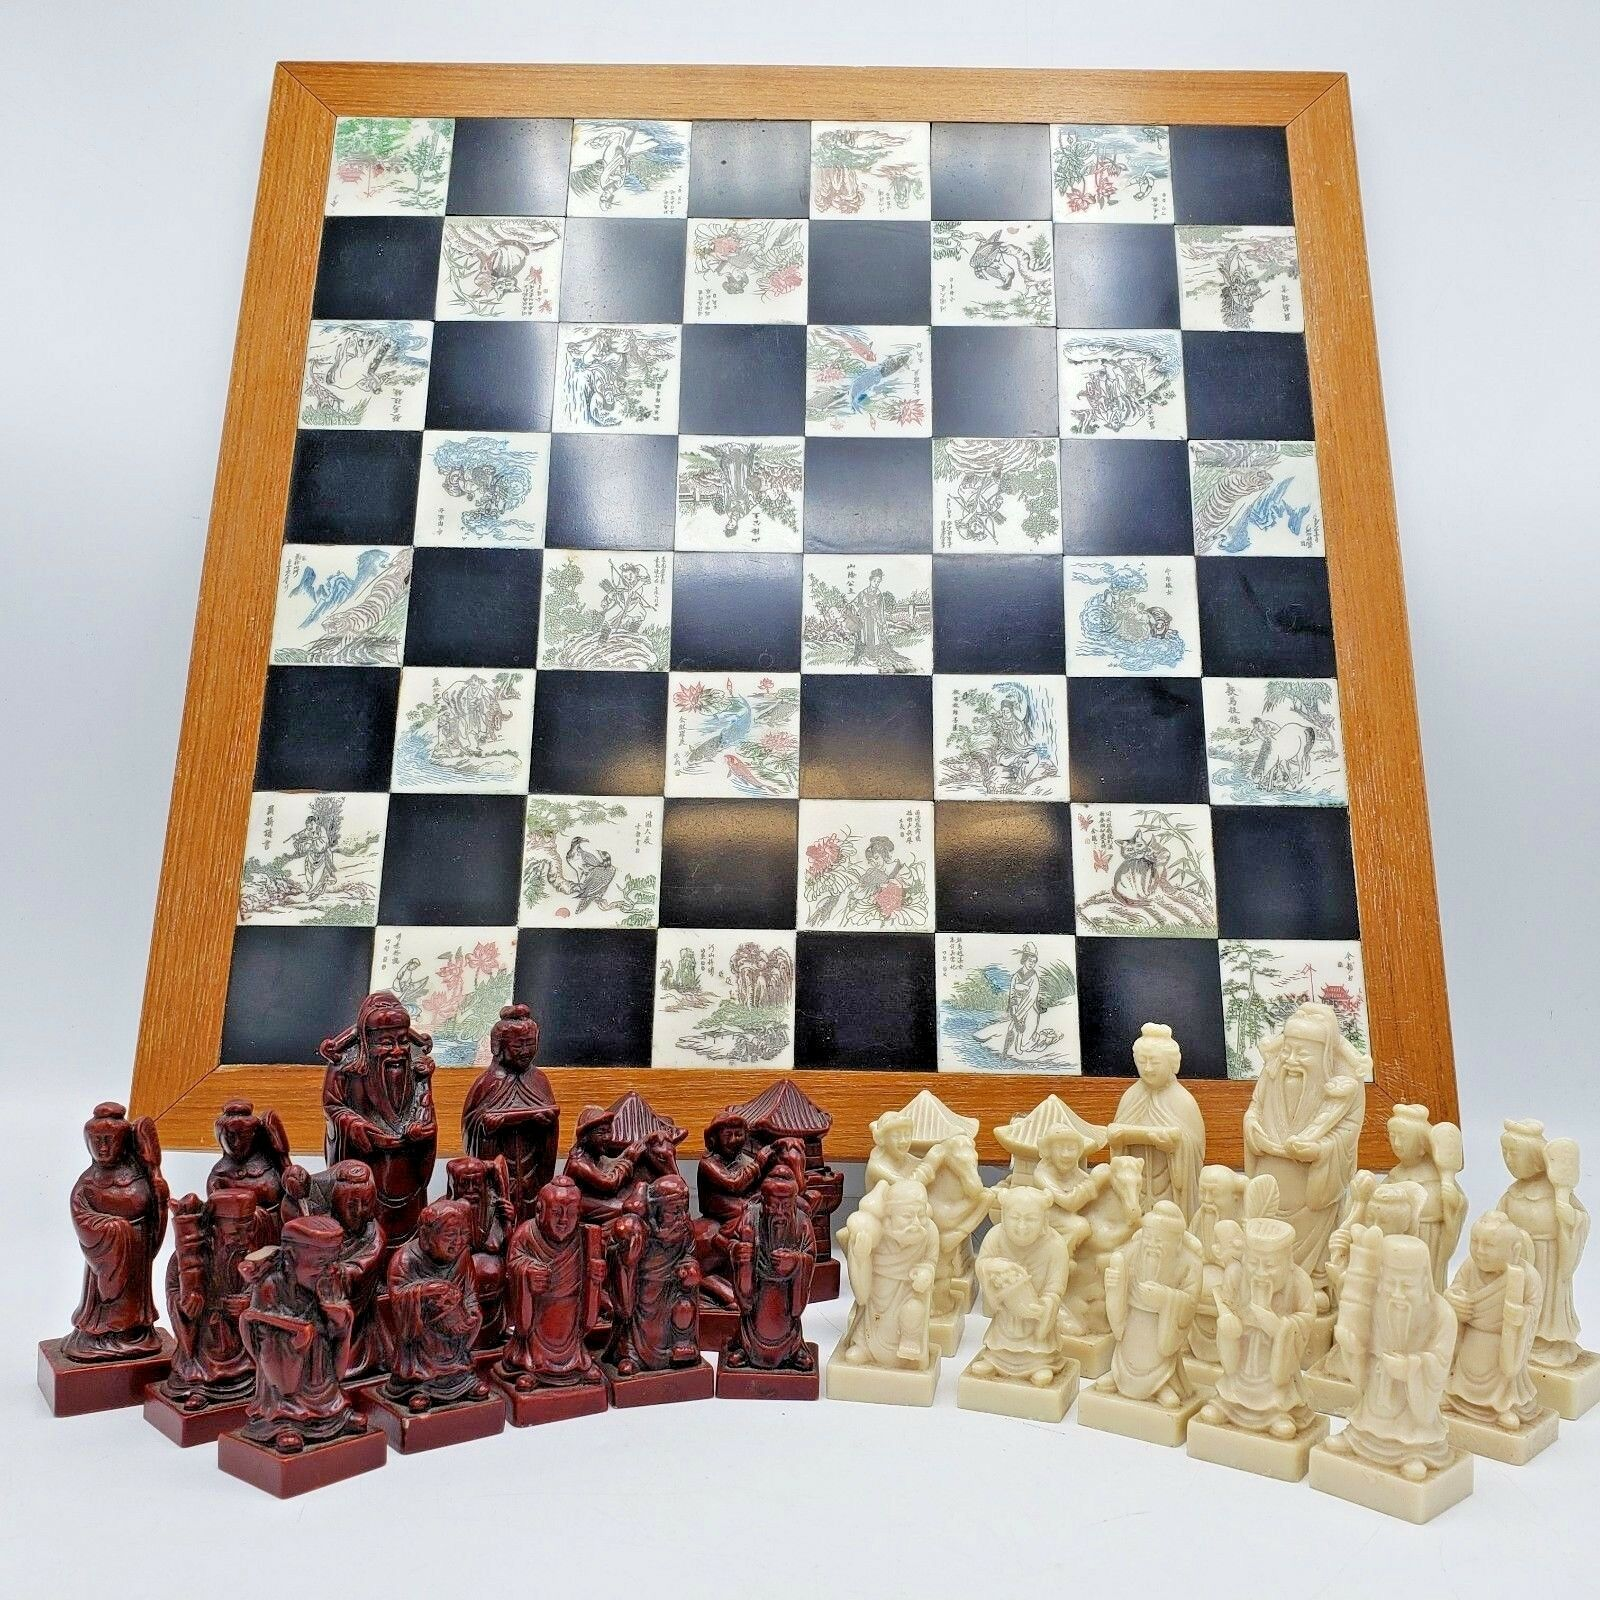 Decorator Asian Style Chess Set w  Resin Pieces